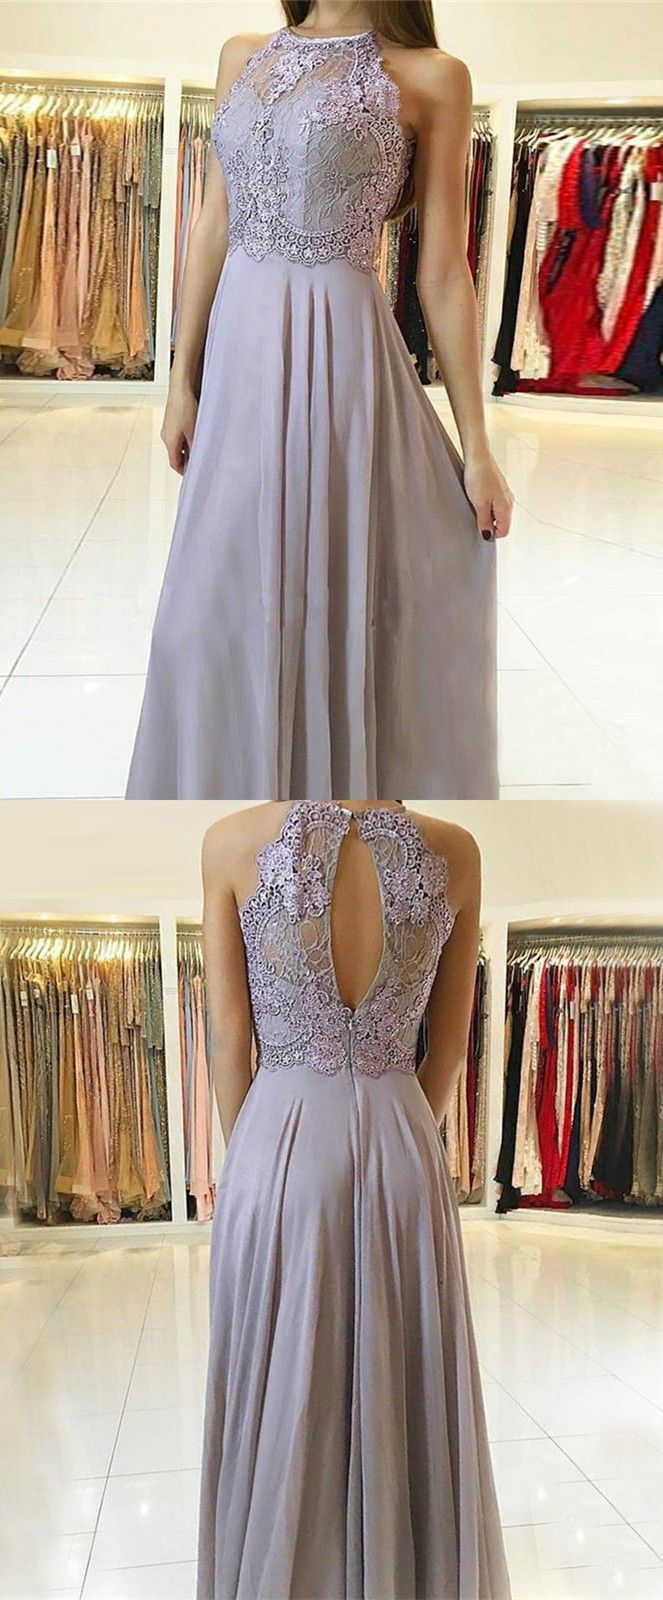 elegant grey formal prom party dresses, chic evening gowns for formal party, #promdresses